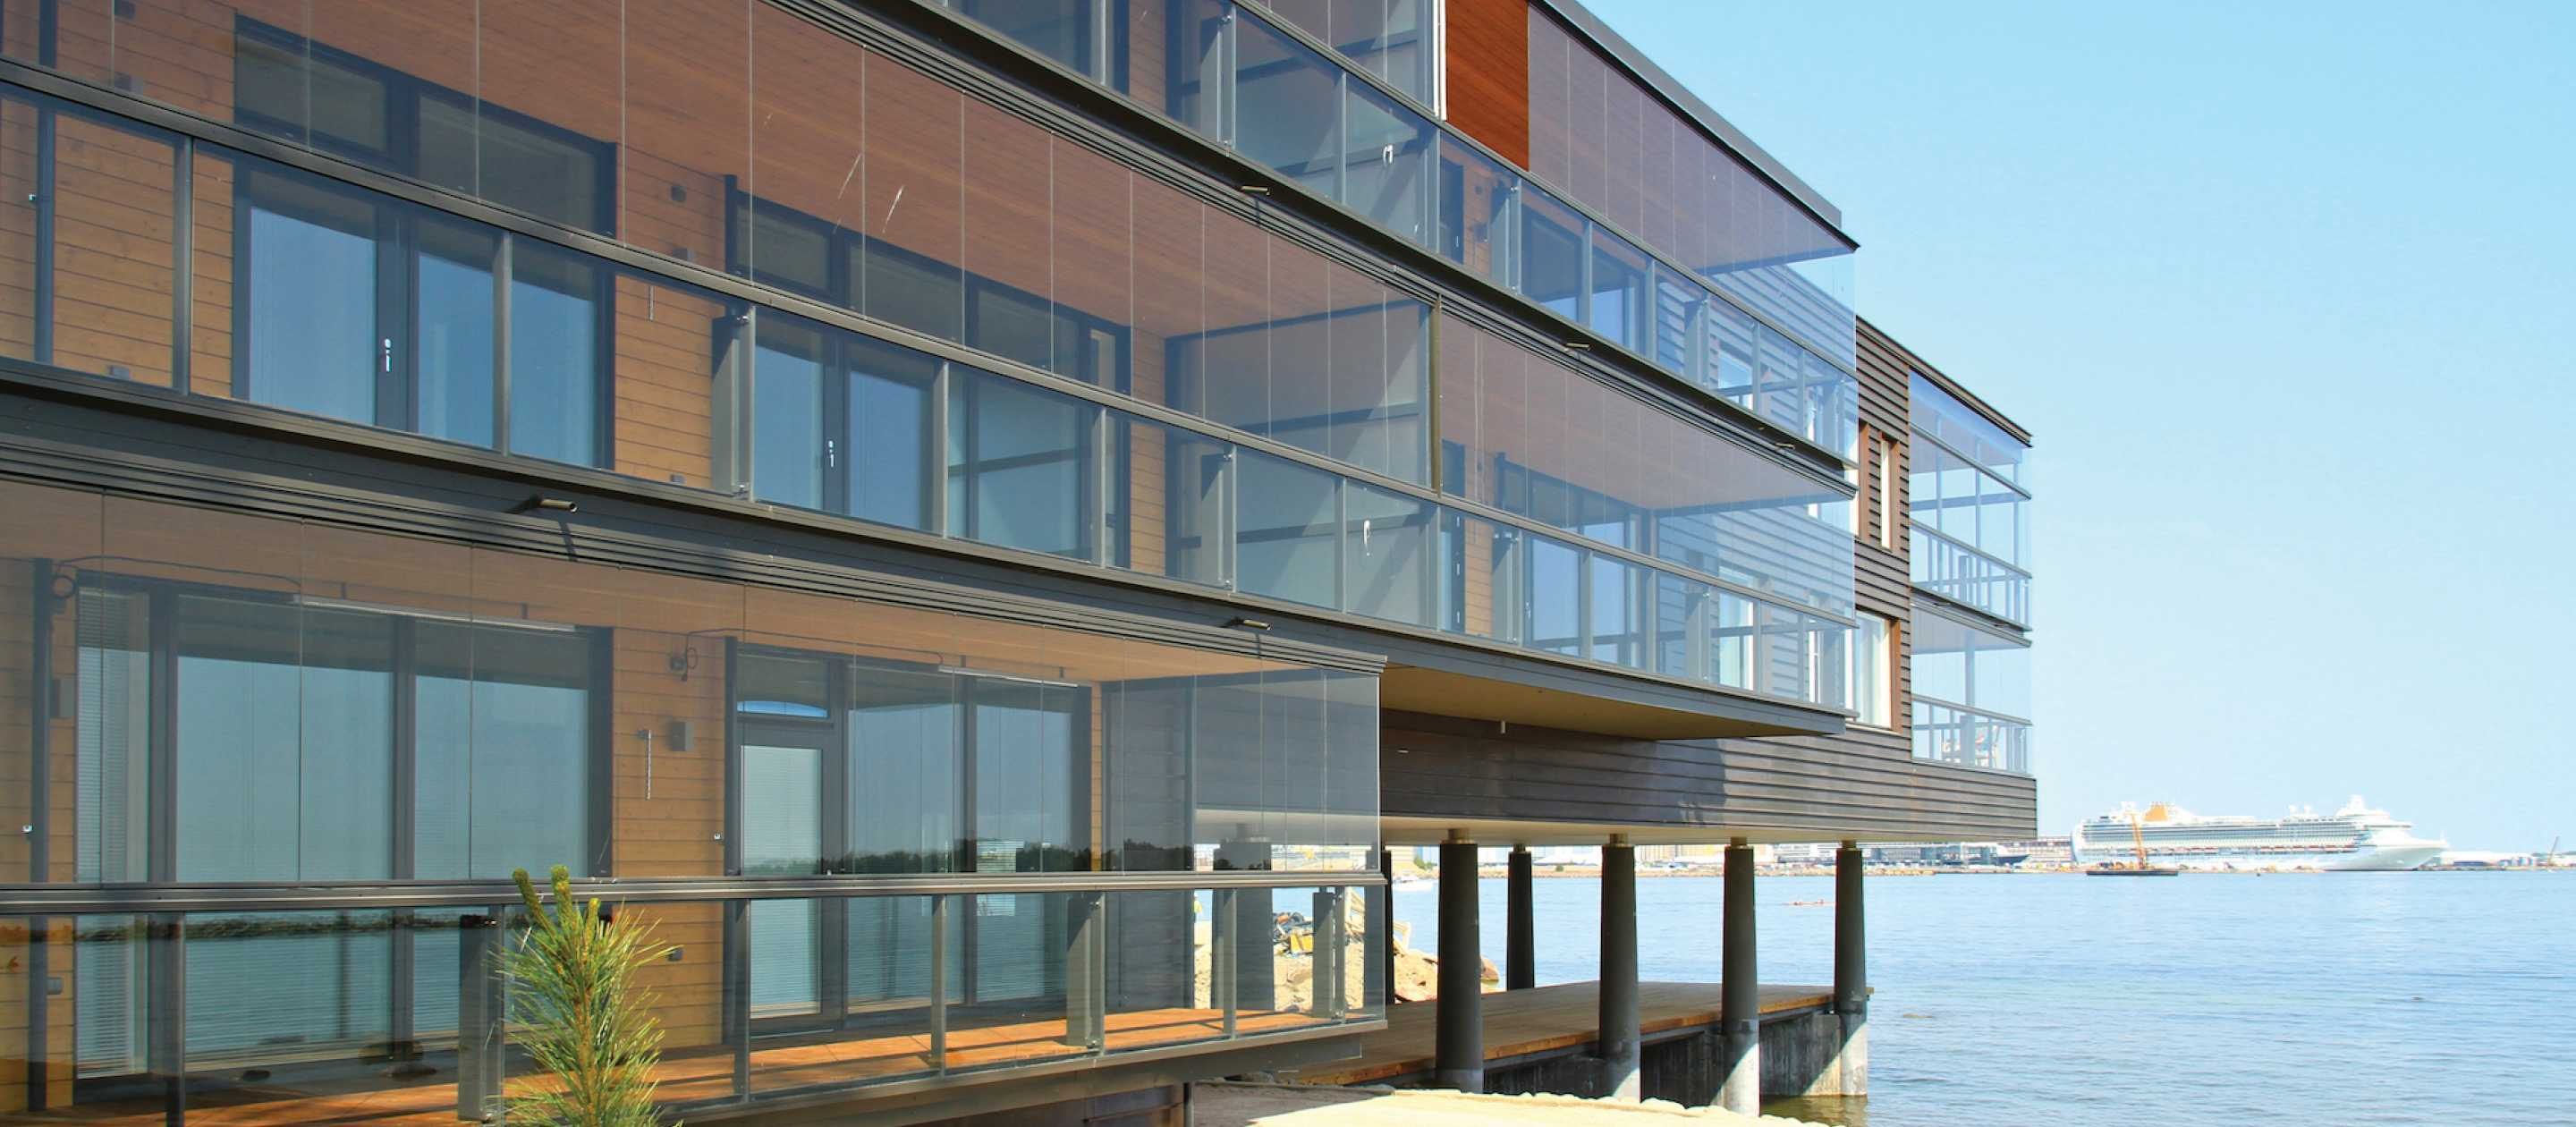 glass balcony, glass balcony facade, balcony facade, lumon glass balcony, lumon glass balcony facade, lumon, glass balcony delta, glass balcony surrey, glass balcony white rock, lumon facade, balcony glass,